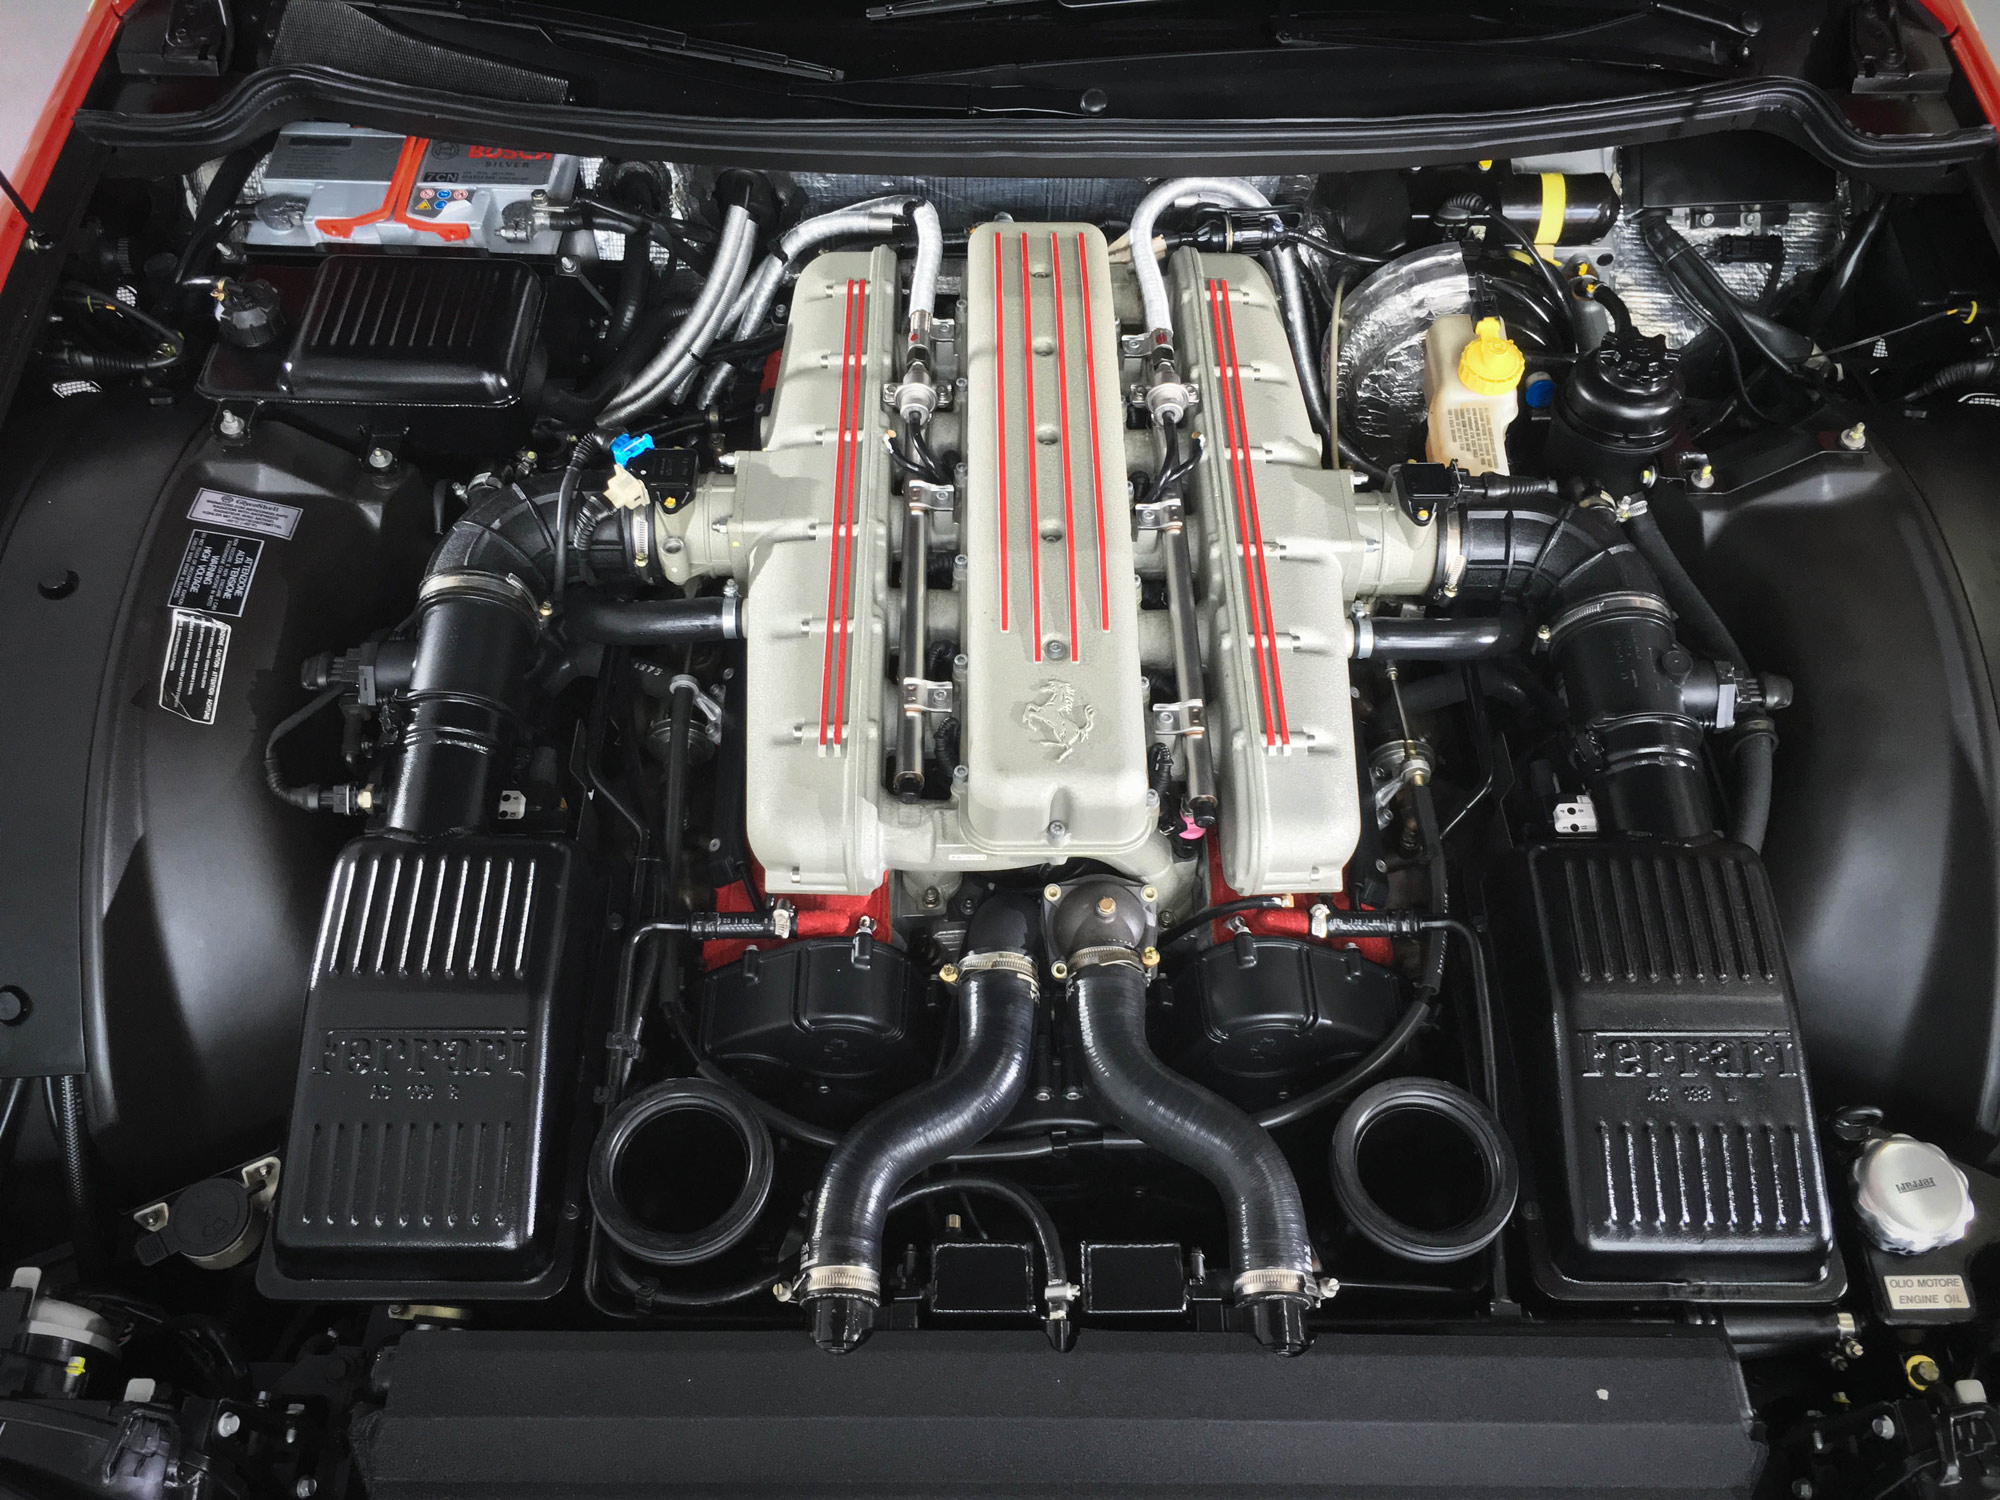 Ferrari_550_Maranello-engine